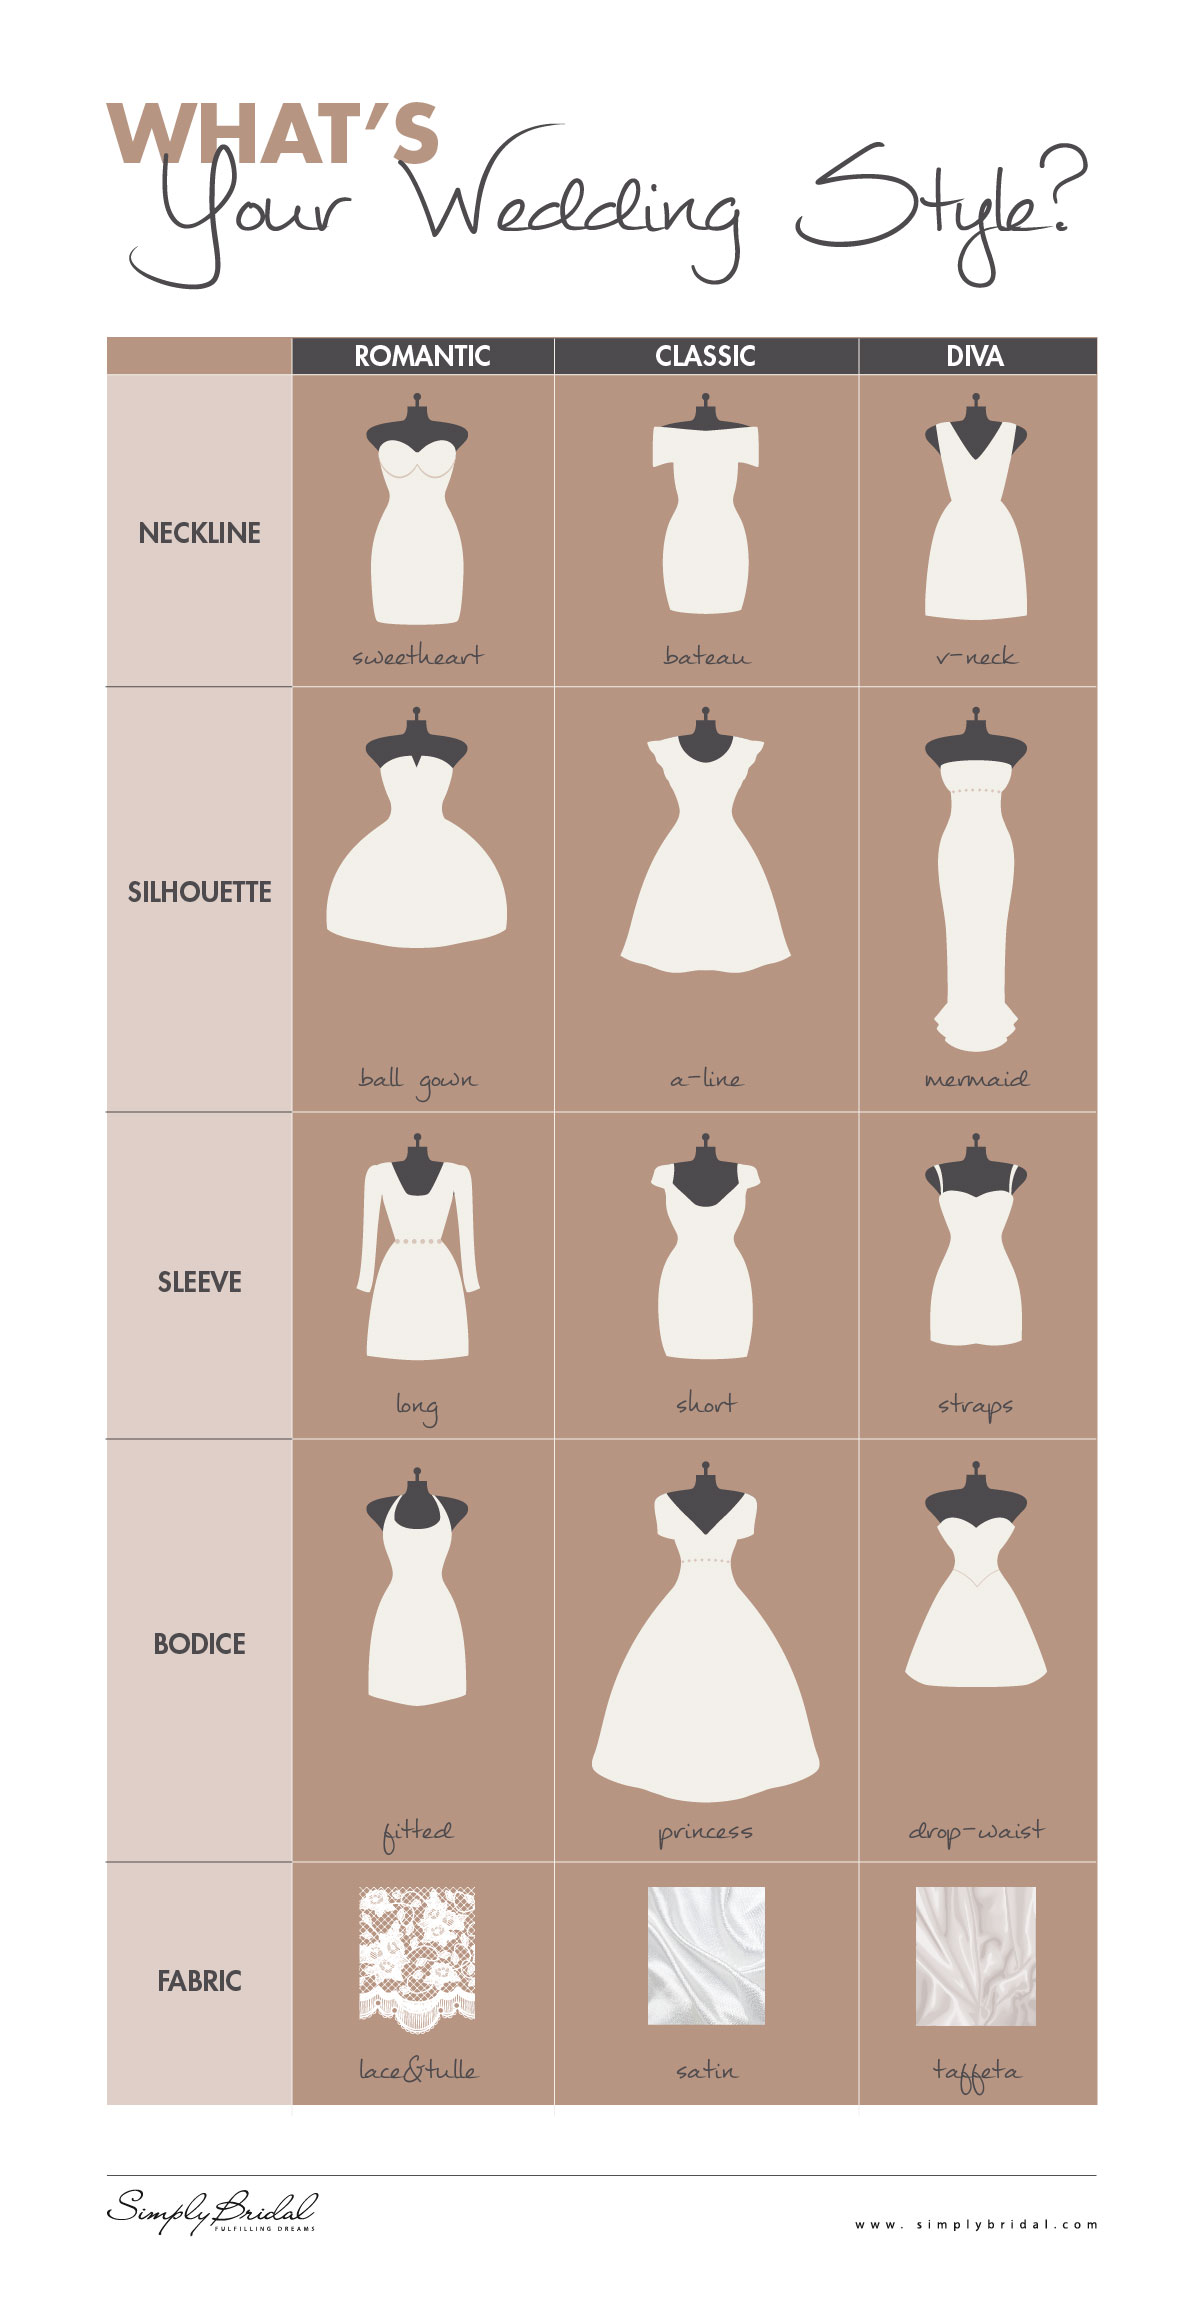 Wedding Dress For Body Types Guide : Styles of wedding dresses with names overlay